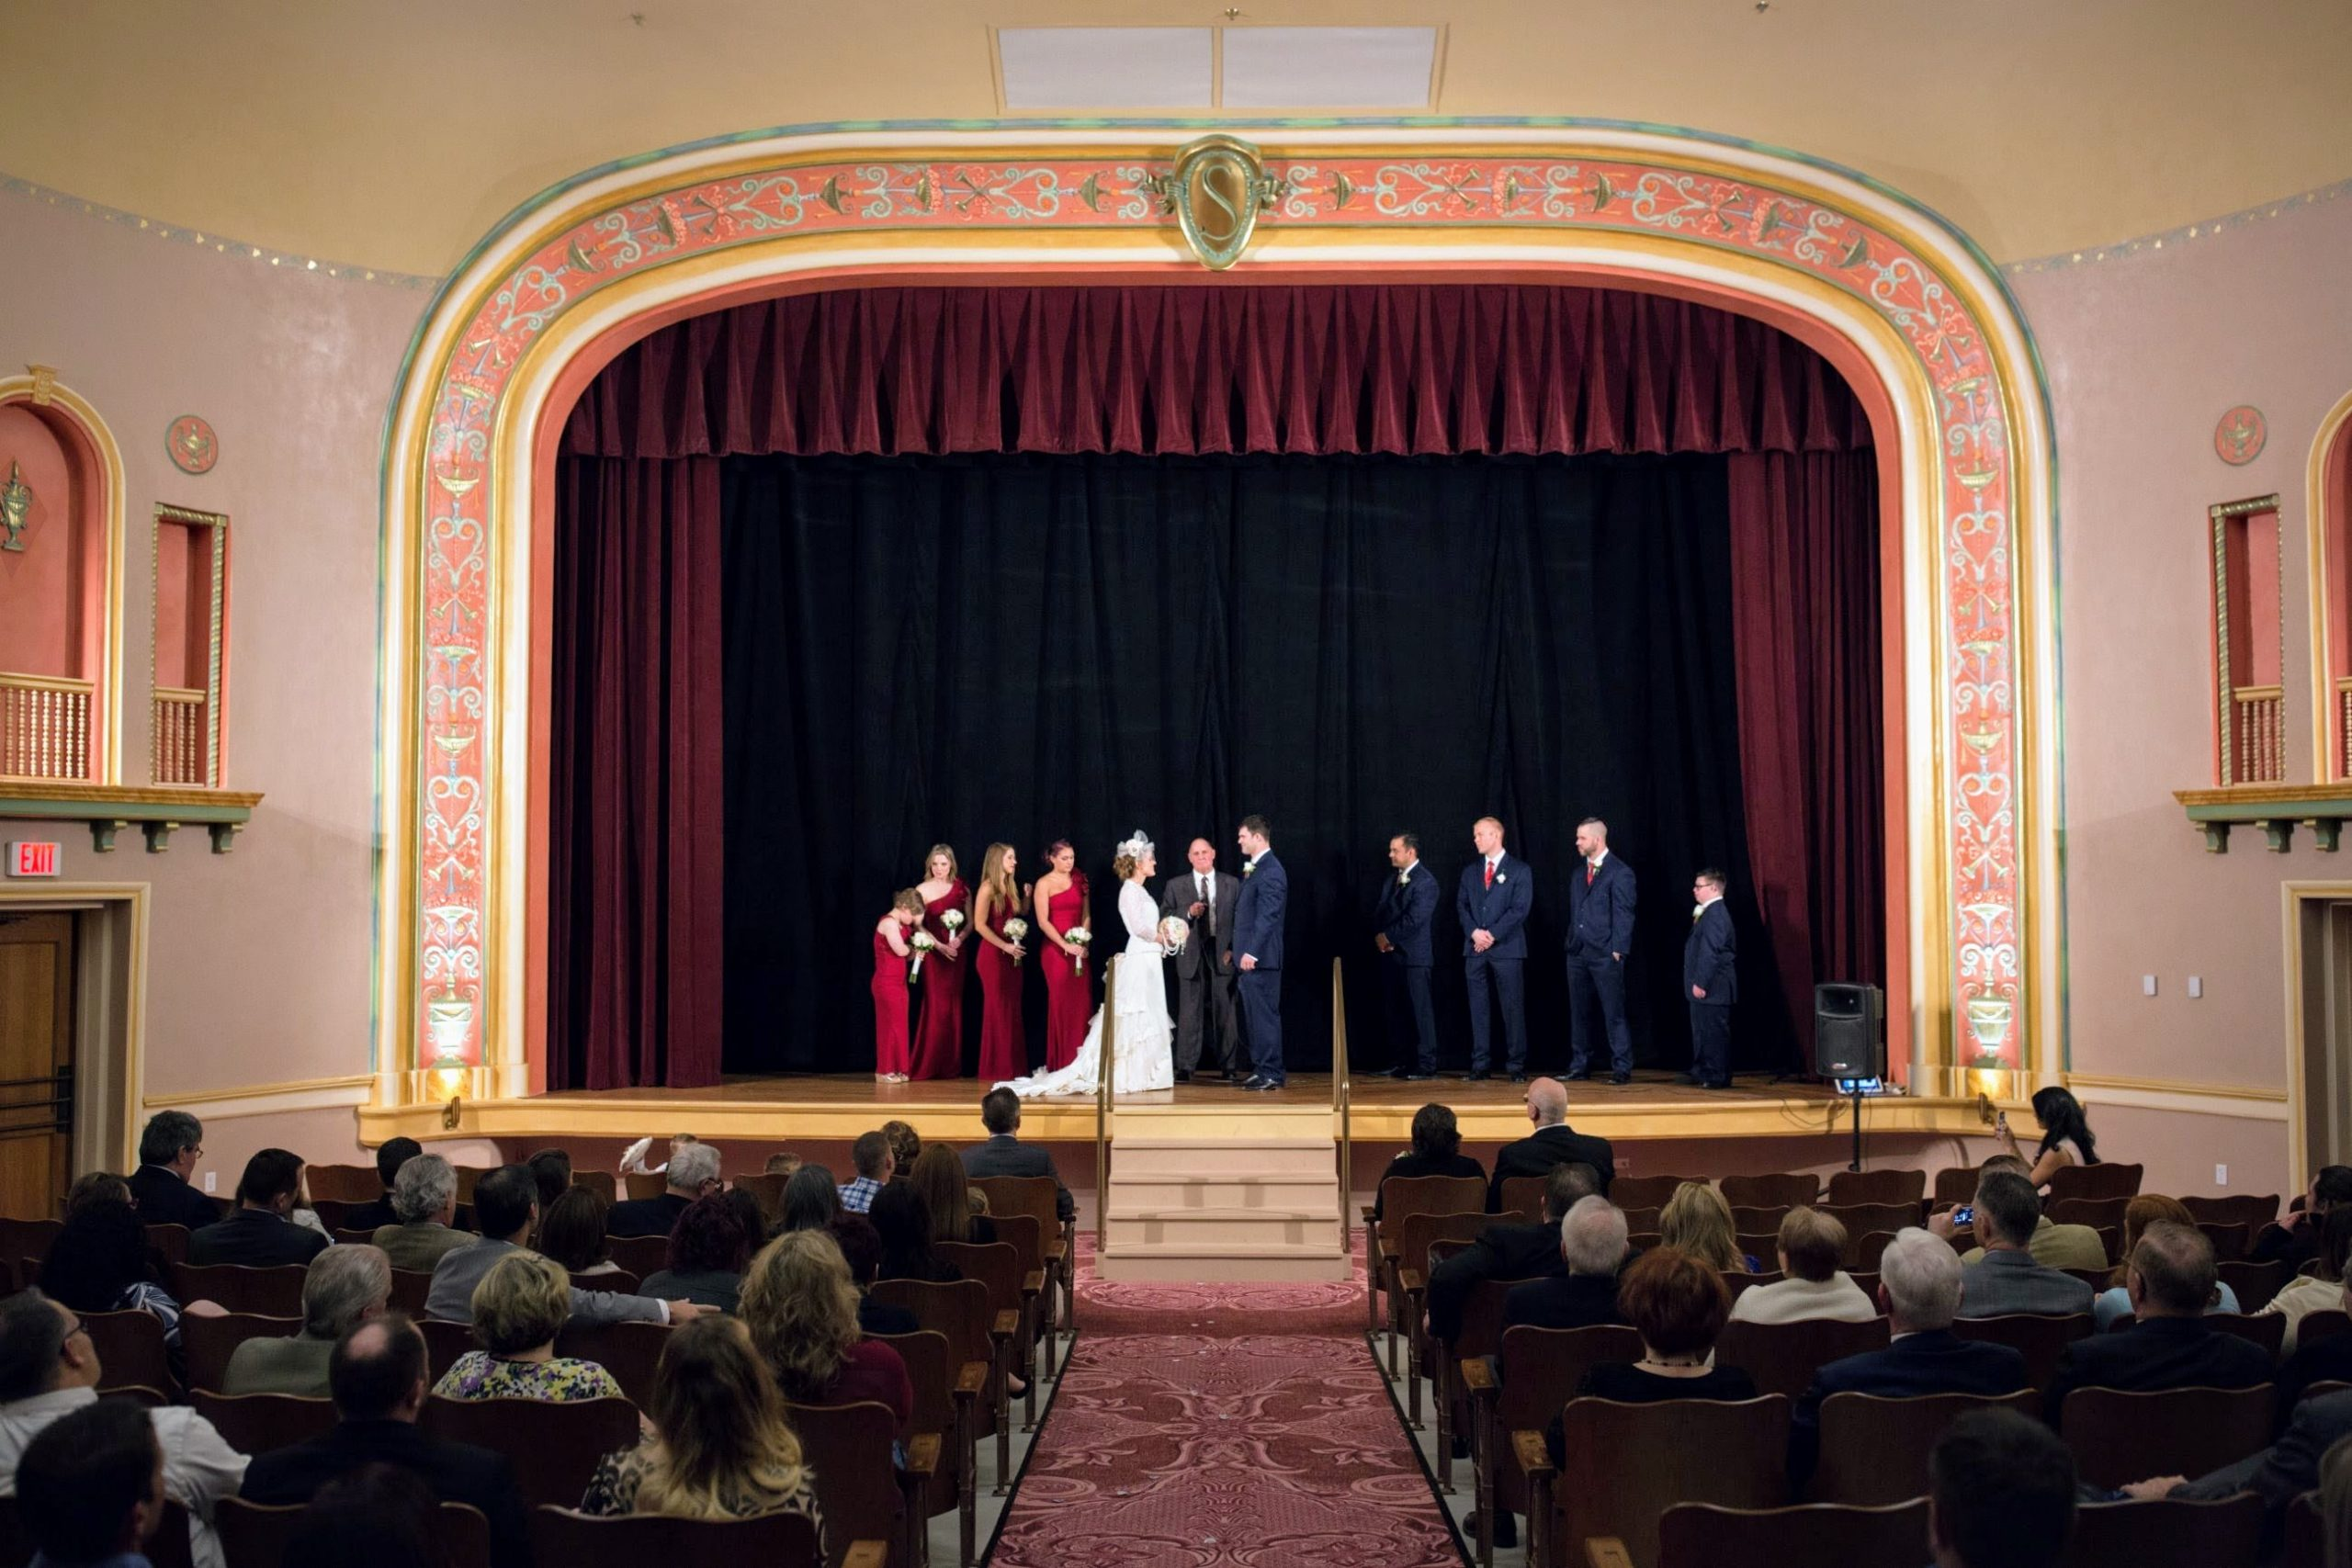 A wedding party is on stage of our vintage Vaudeville stage with groomsmen and bridesmaids flanking each side. Guests are seated below in the auditoriums roomy seats; watching the ceremony.